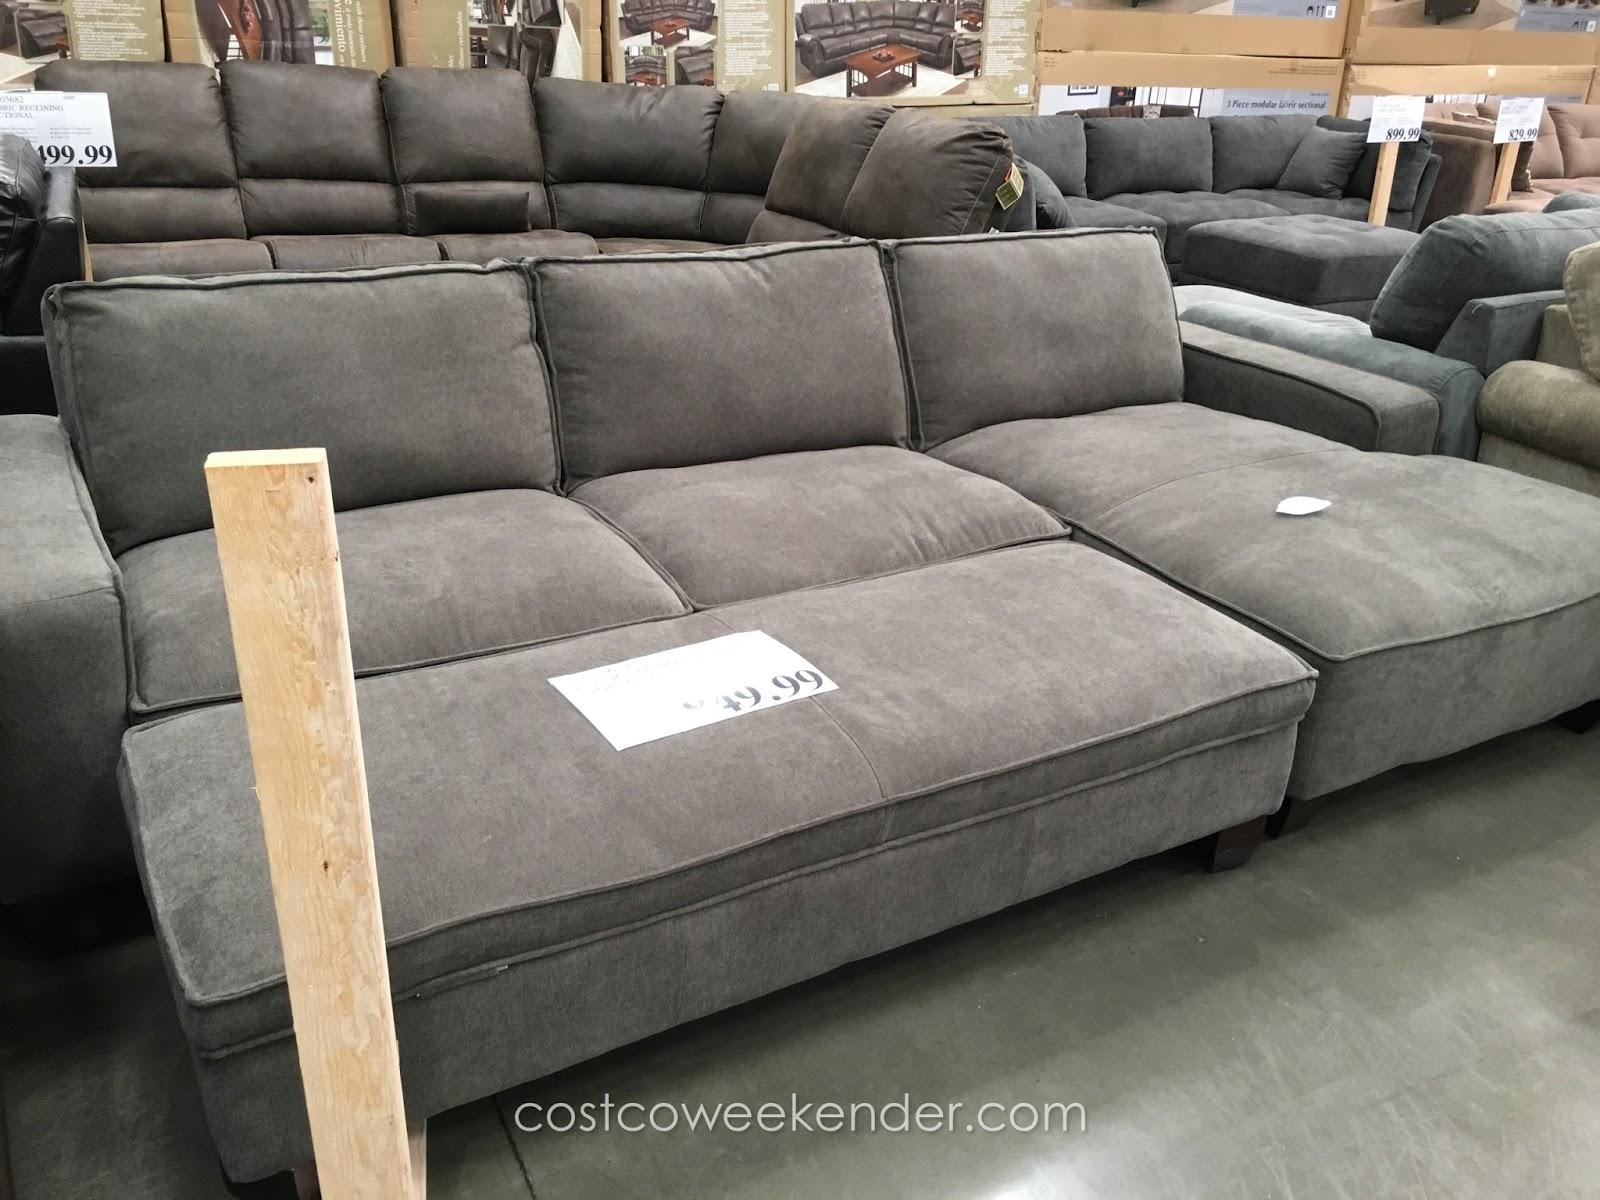 Furniture: Extra Large Sectional Sofa | Modular Sofa Sectional In Giant Sofa Beds (View 7 of 20)